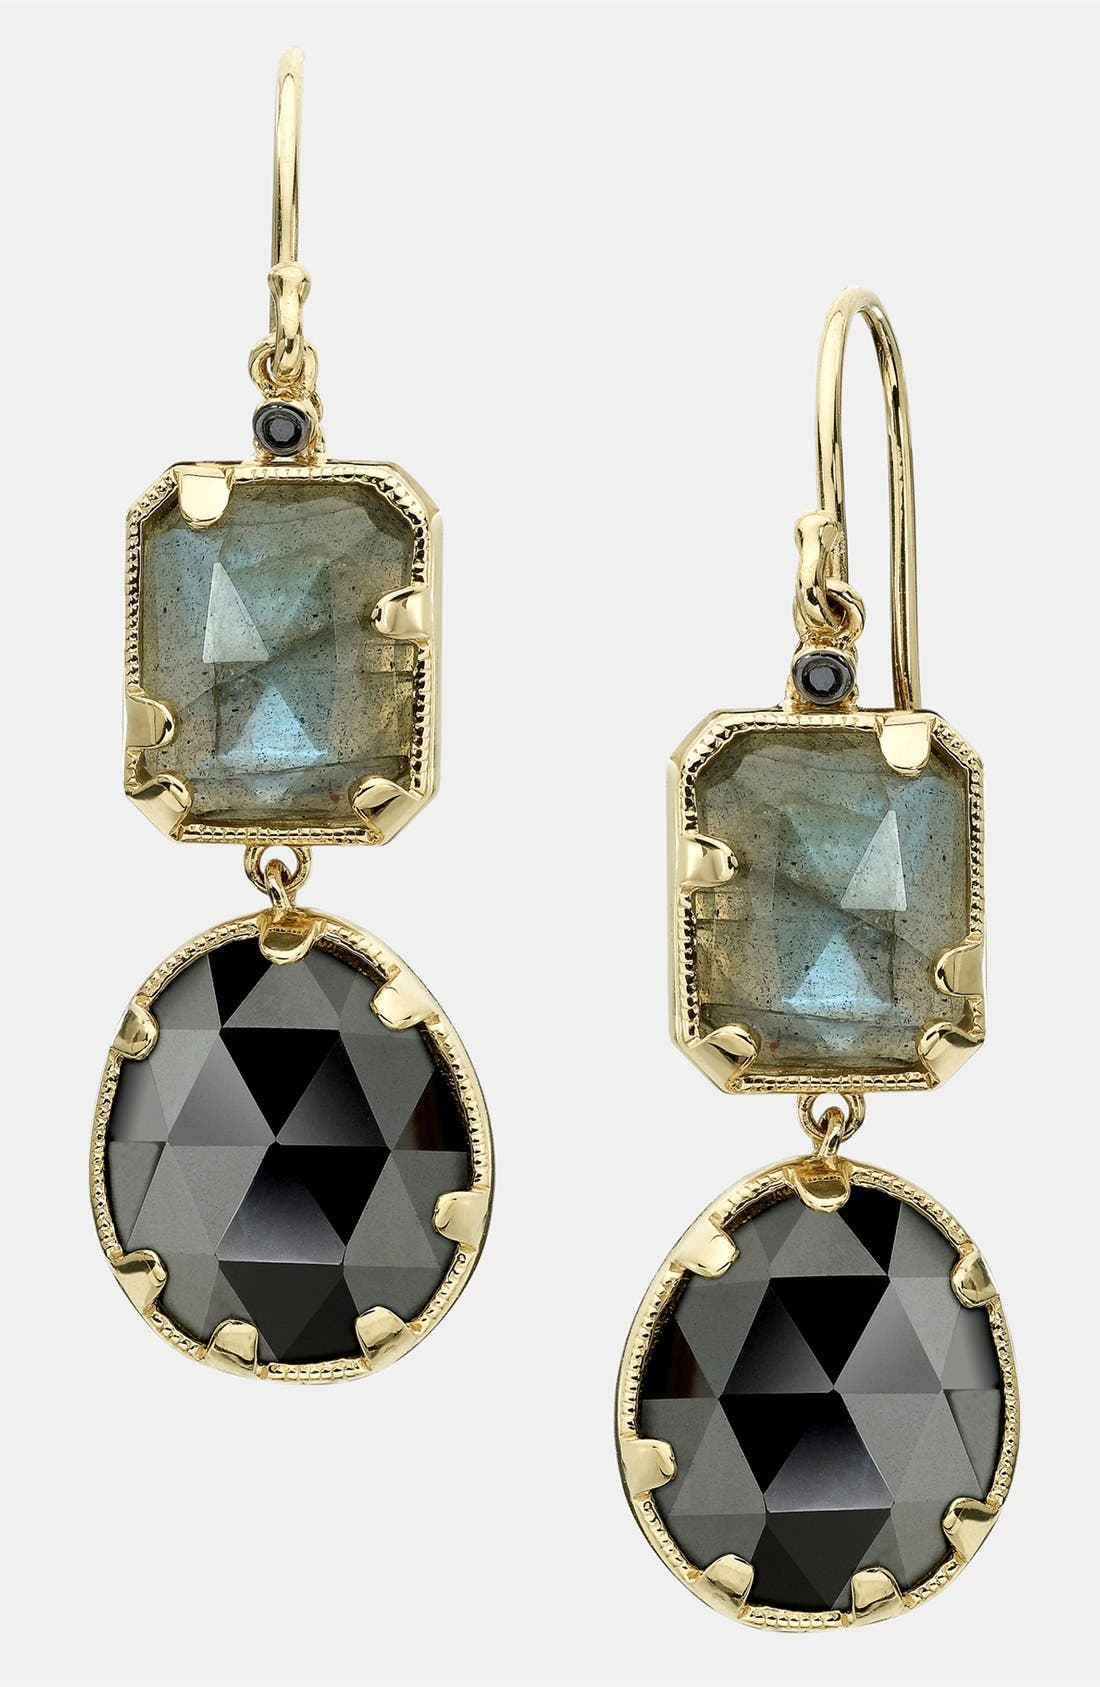 Main Image - Whitney Stern Drop Earrings